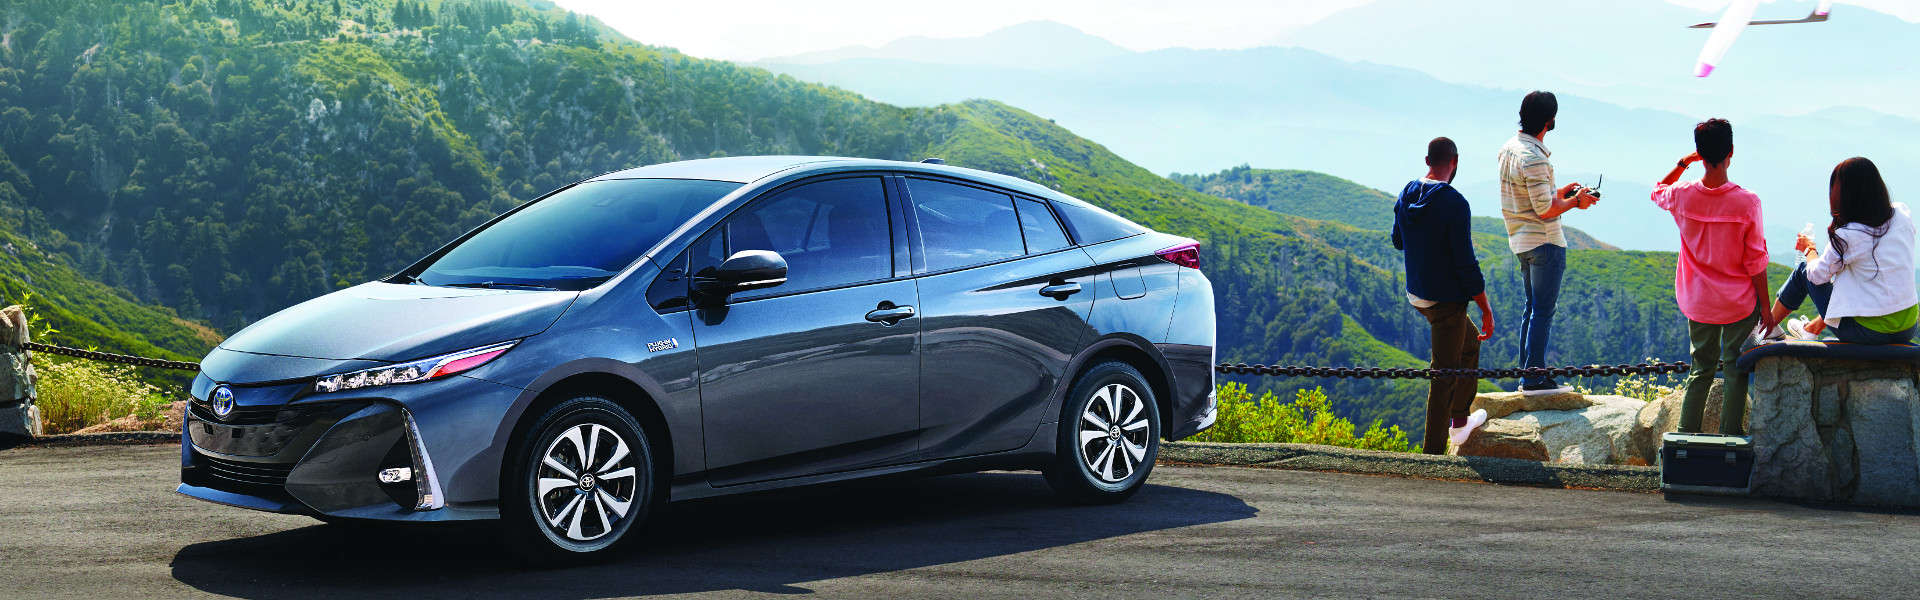 2018 toyota prius prime ken shaw toyota for Electric motors nashville tn